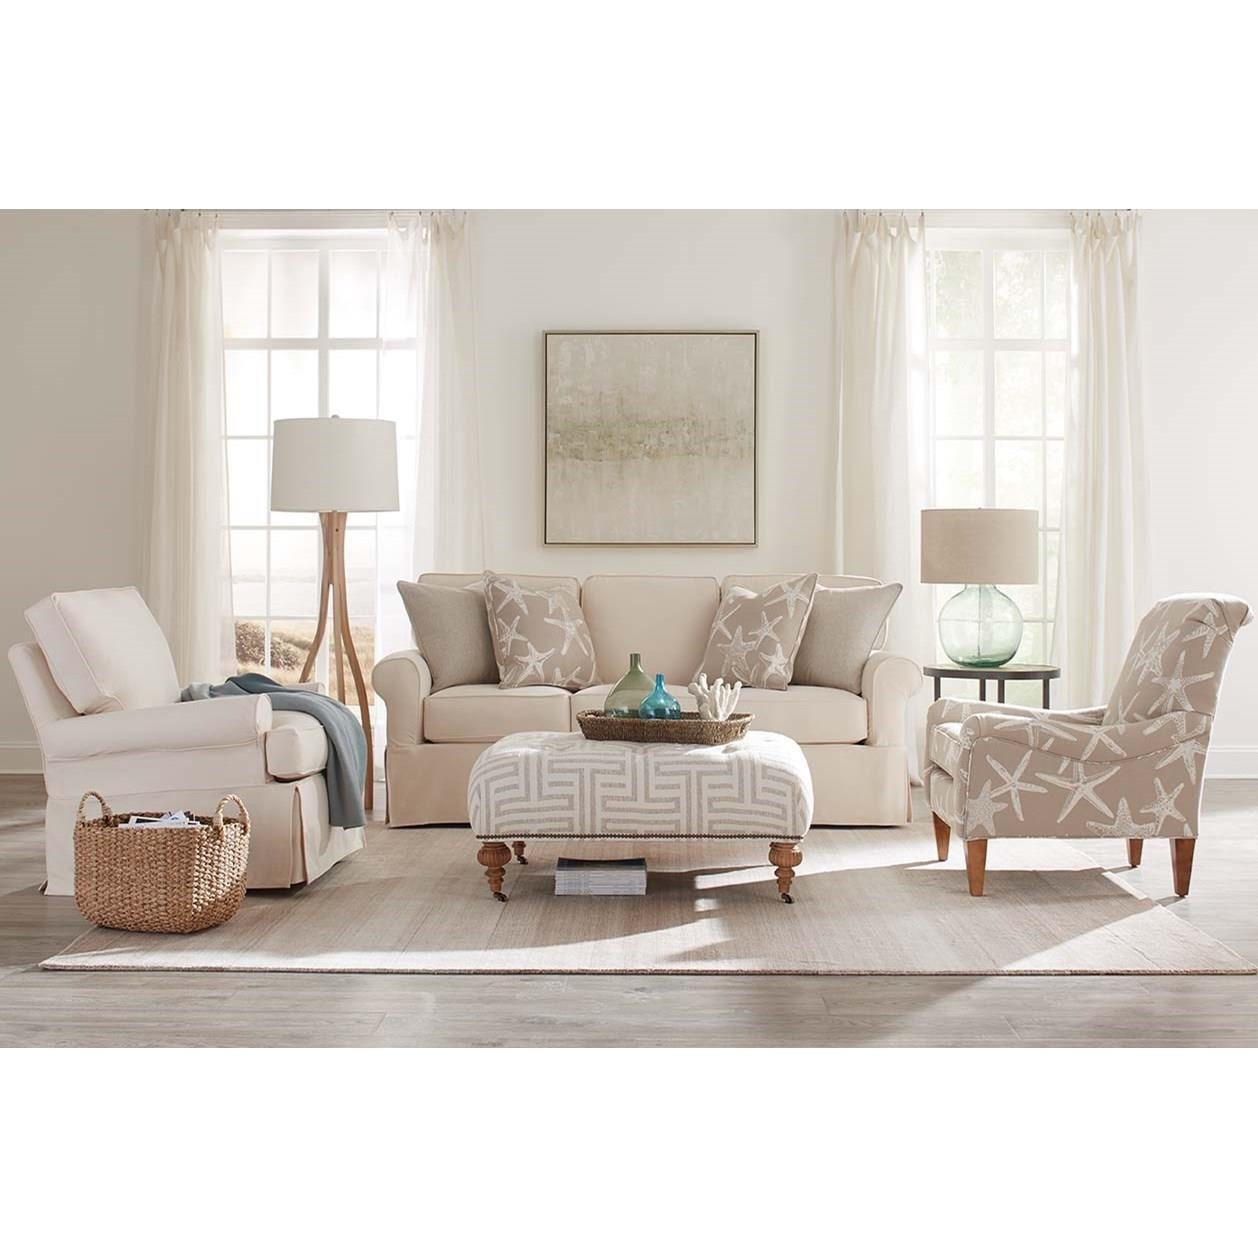 Rowe Nantucket A910 000 Casual Style Sofa With Two Accent